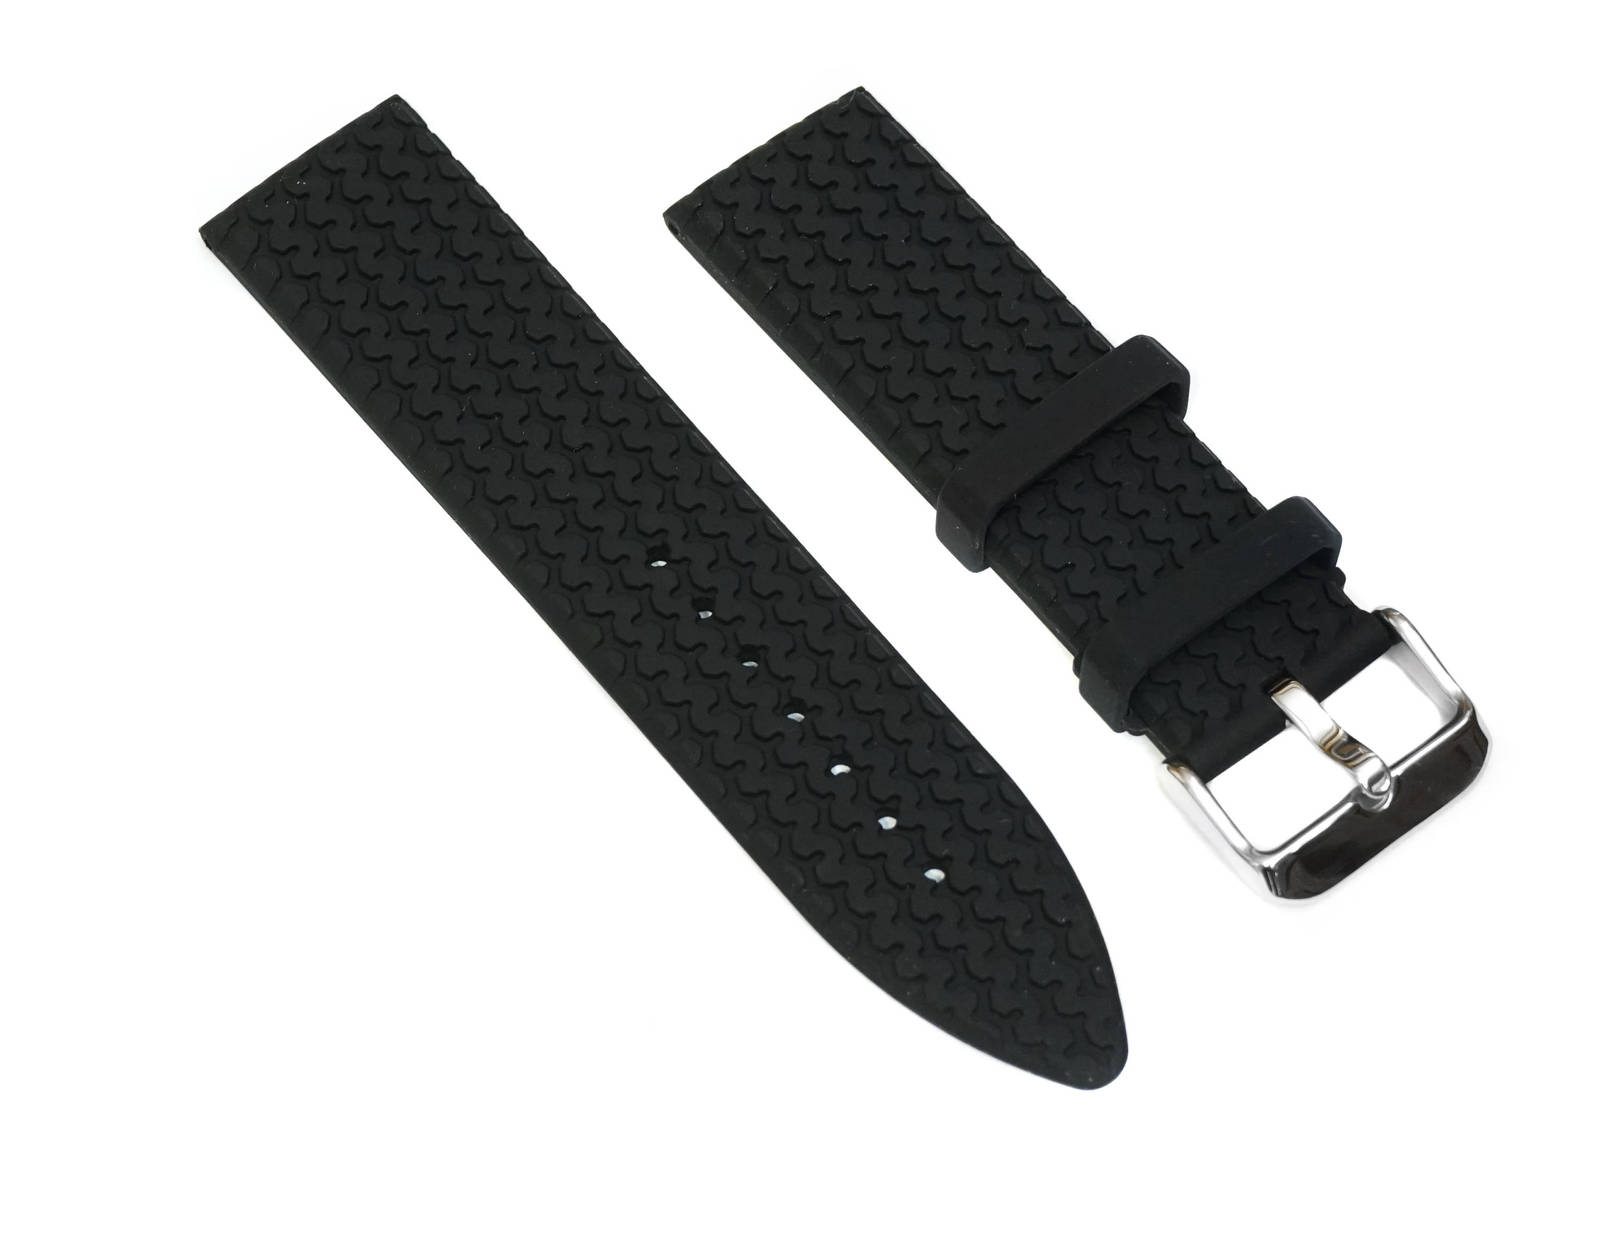 23mm Black Rubber Strap Watch Band Replacement Diver for Chopard Mille Miglia